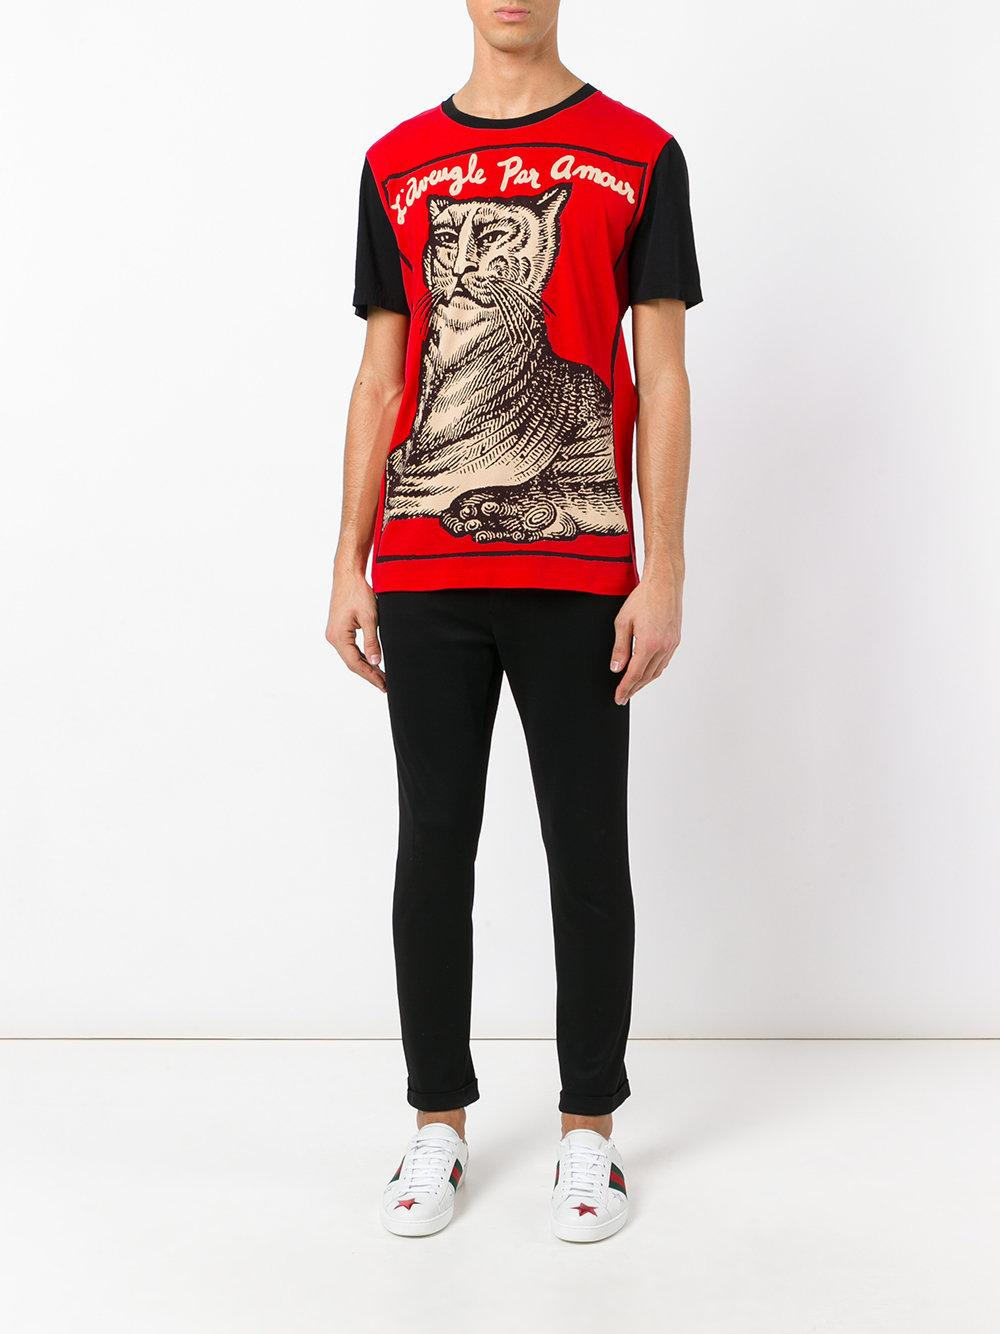 Gucci L Aveugle Par Amour T Shirt In Red For Men Lyst